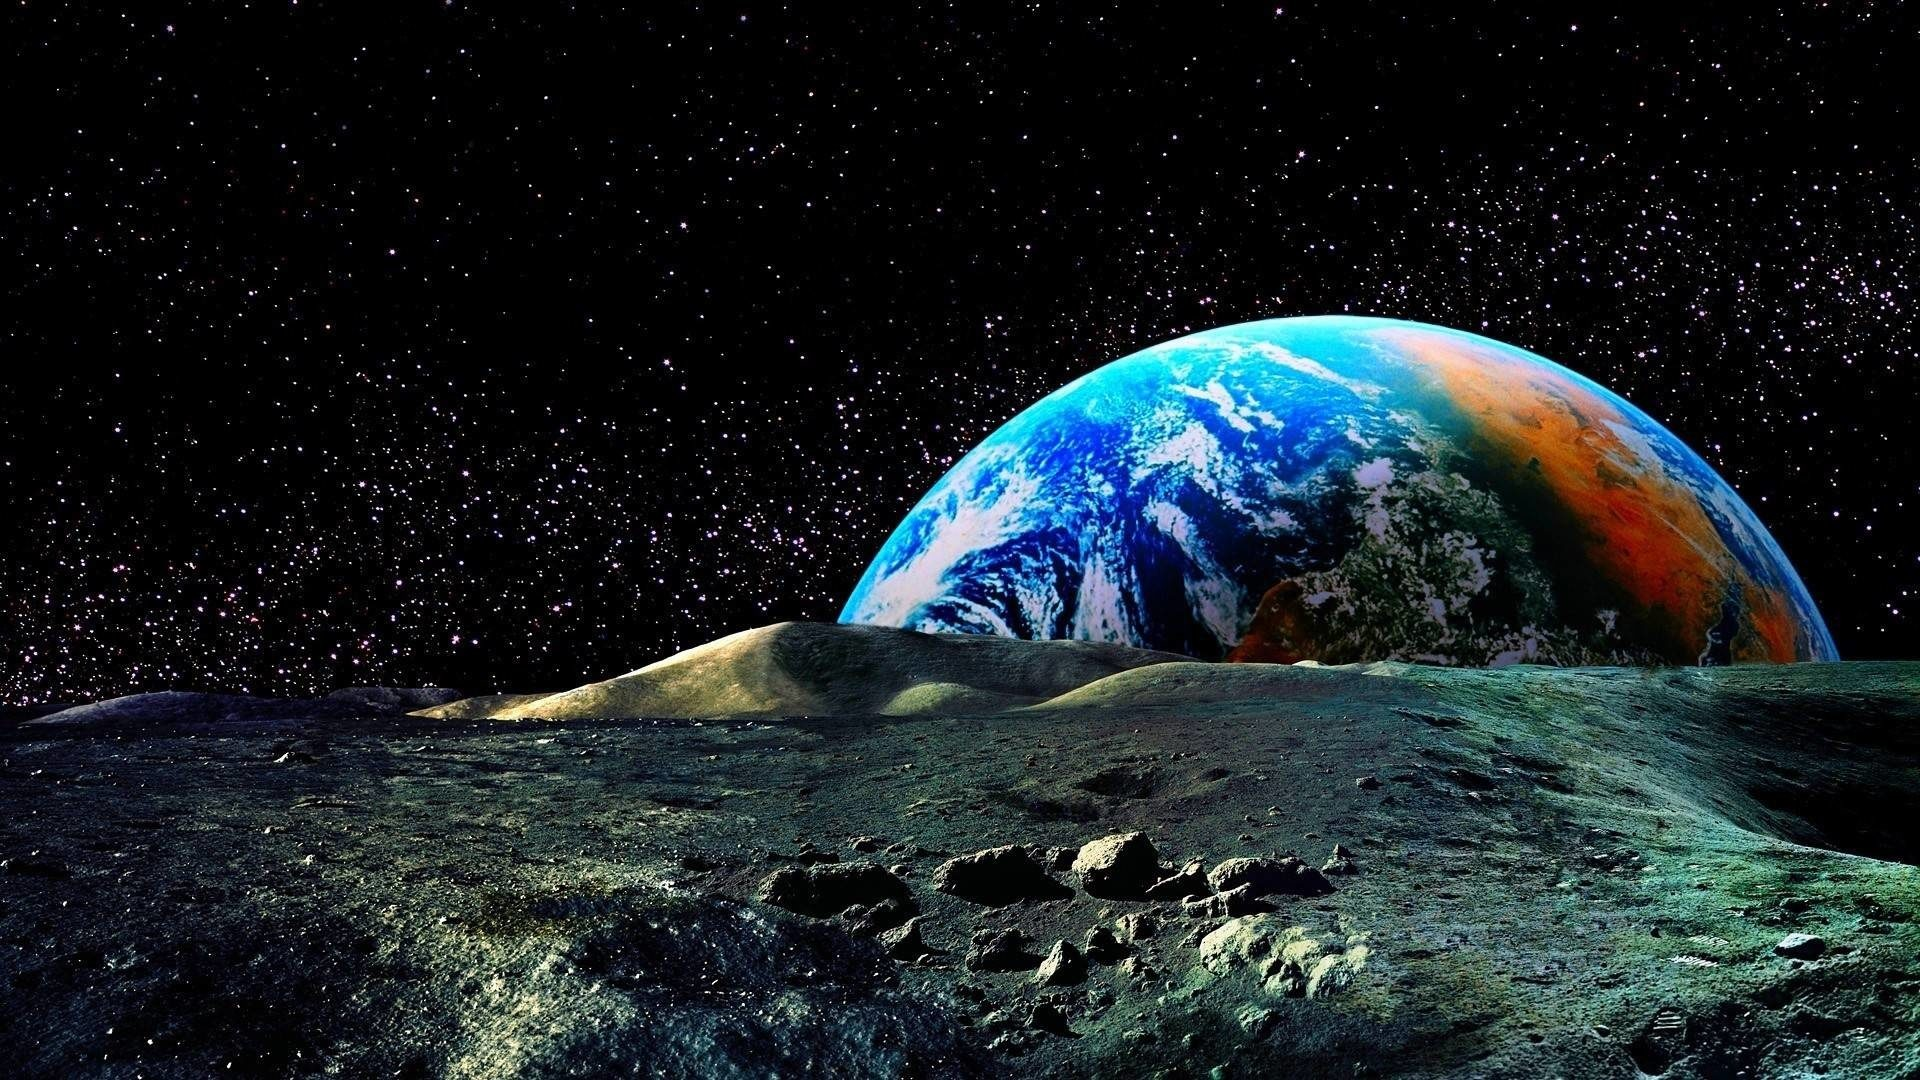 Trippy-Space-Wallpapers-Earth-From-Space-hd-wallpaper-